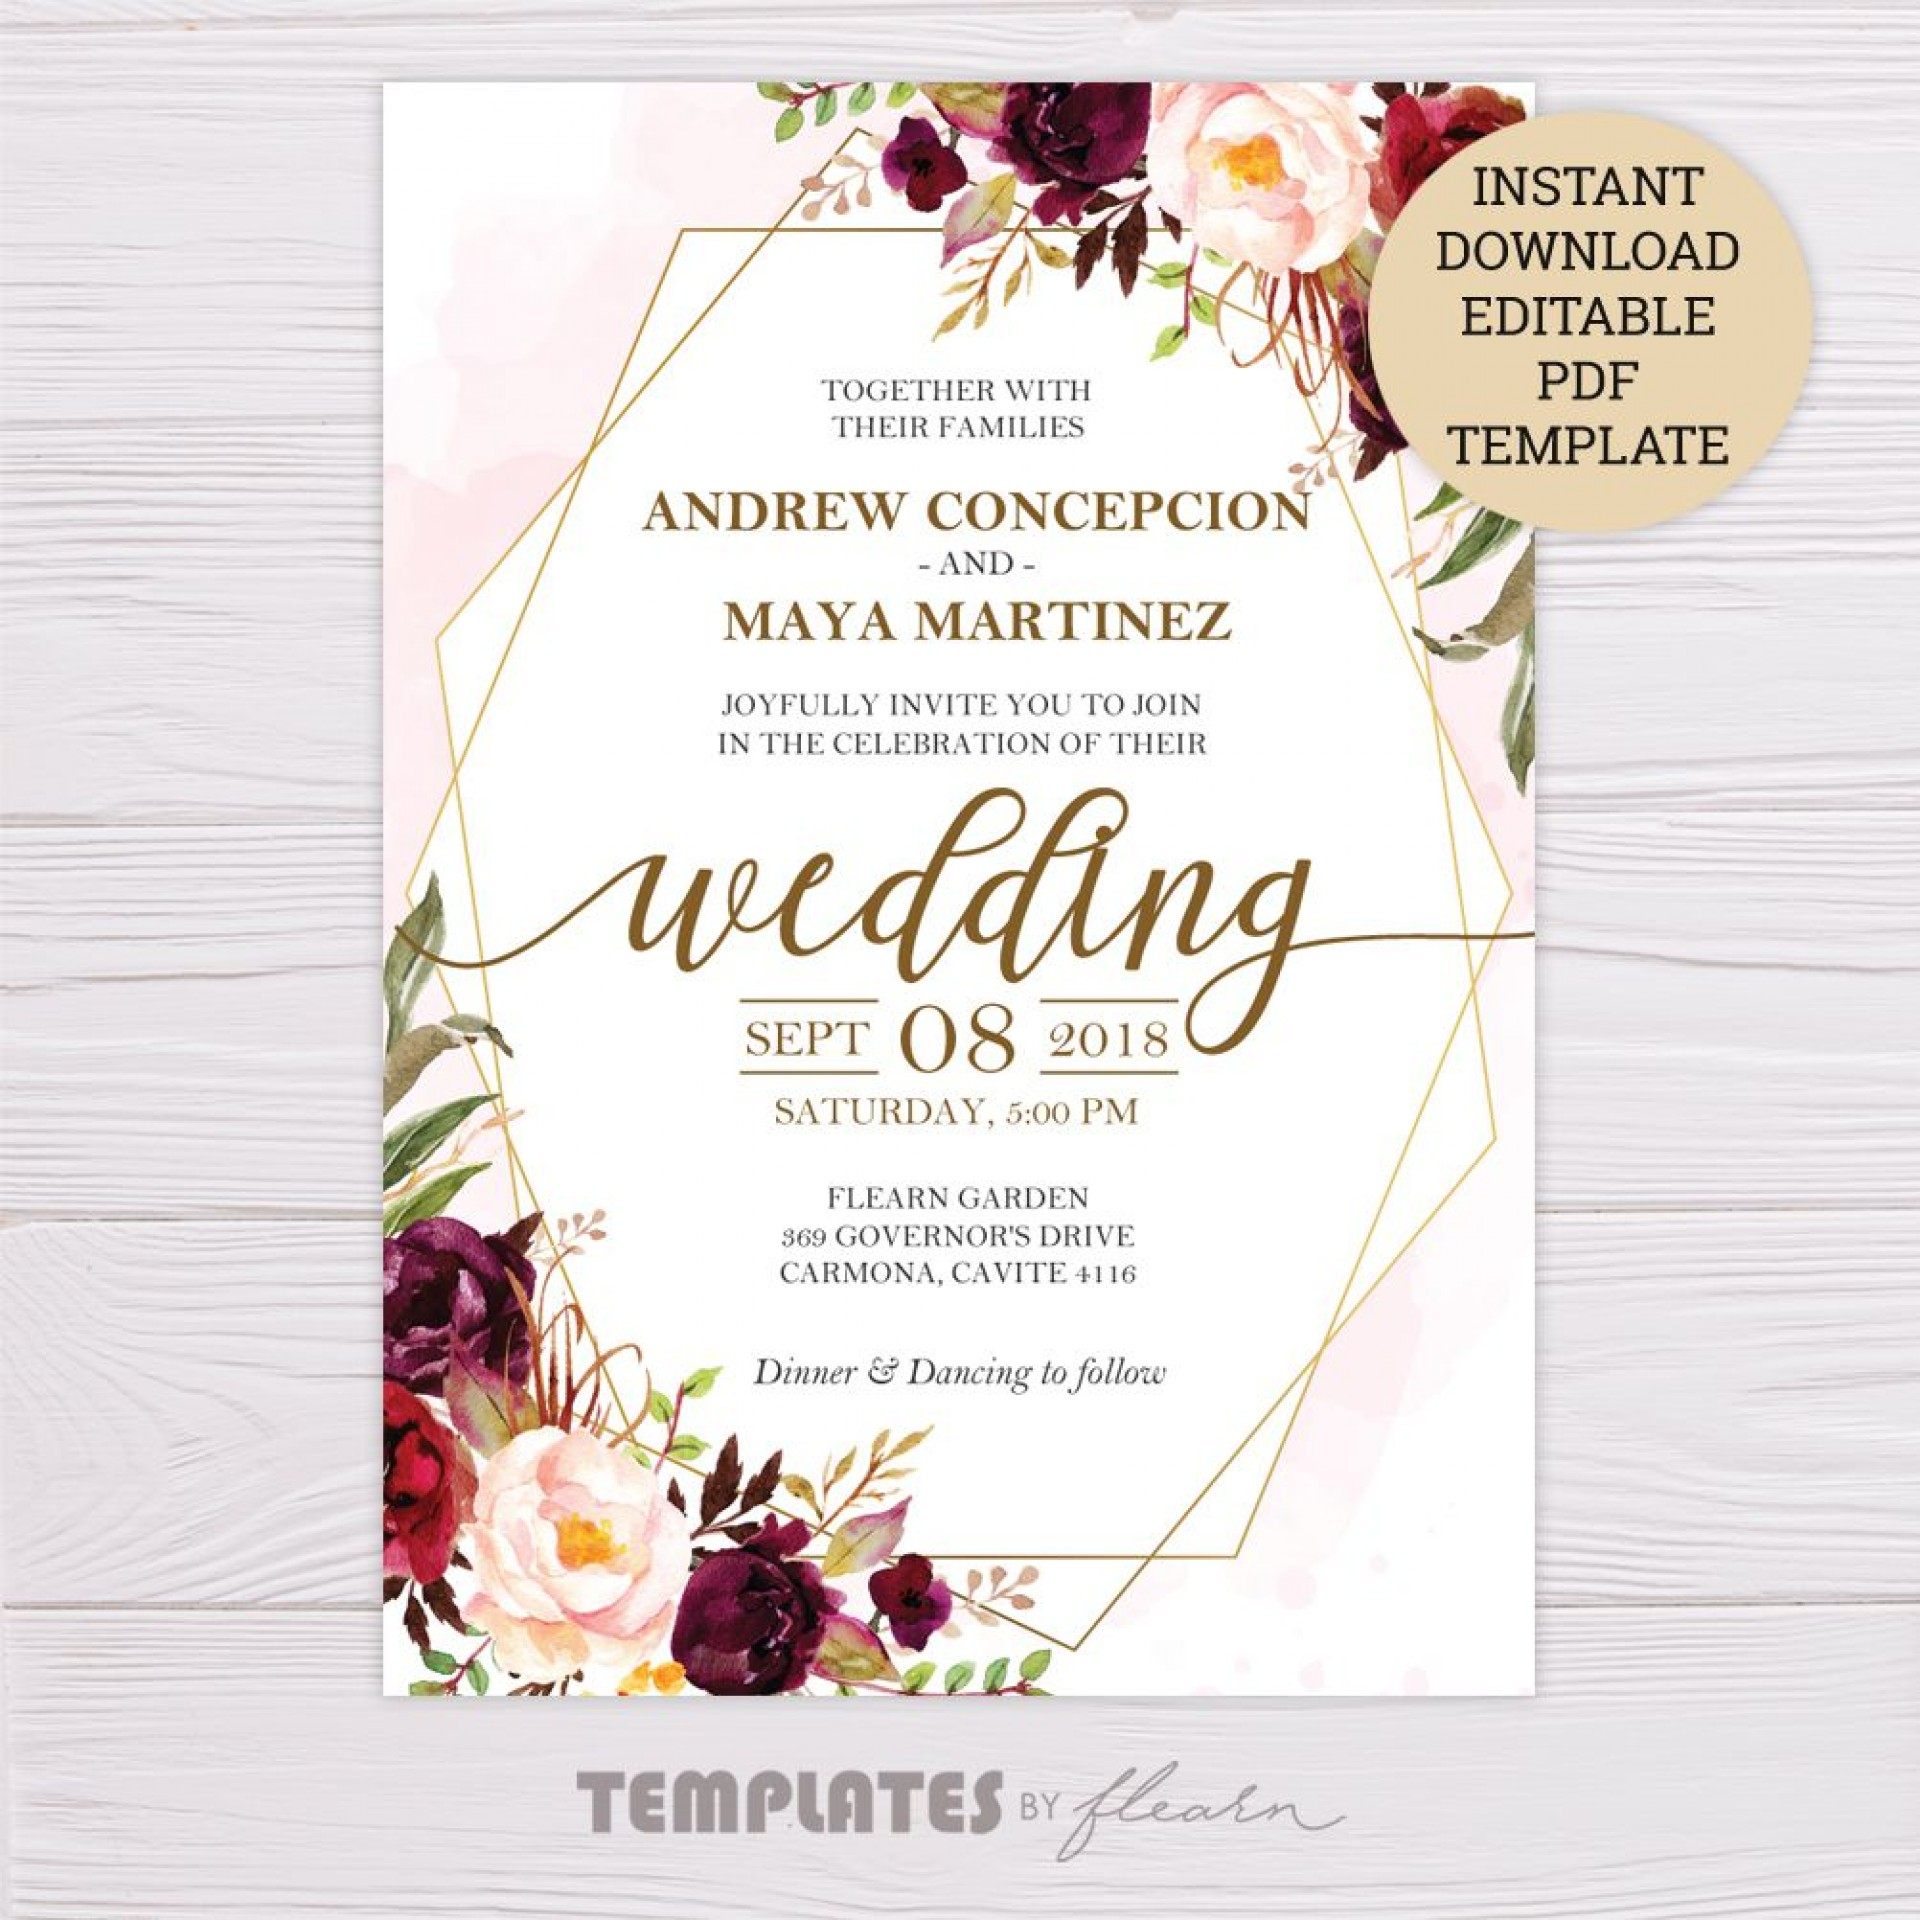 008 Unbelievable Wedding Invitation Template Word Highest Quality  Invite Wording Uk Anniversary Microsoft Free Marriage1920